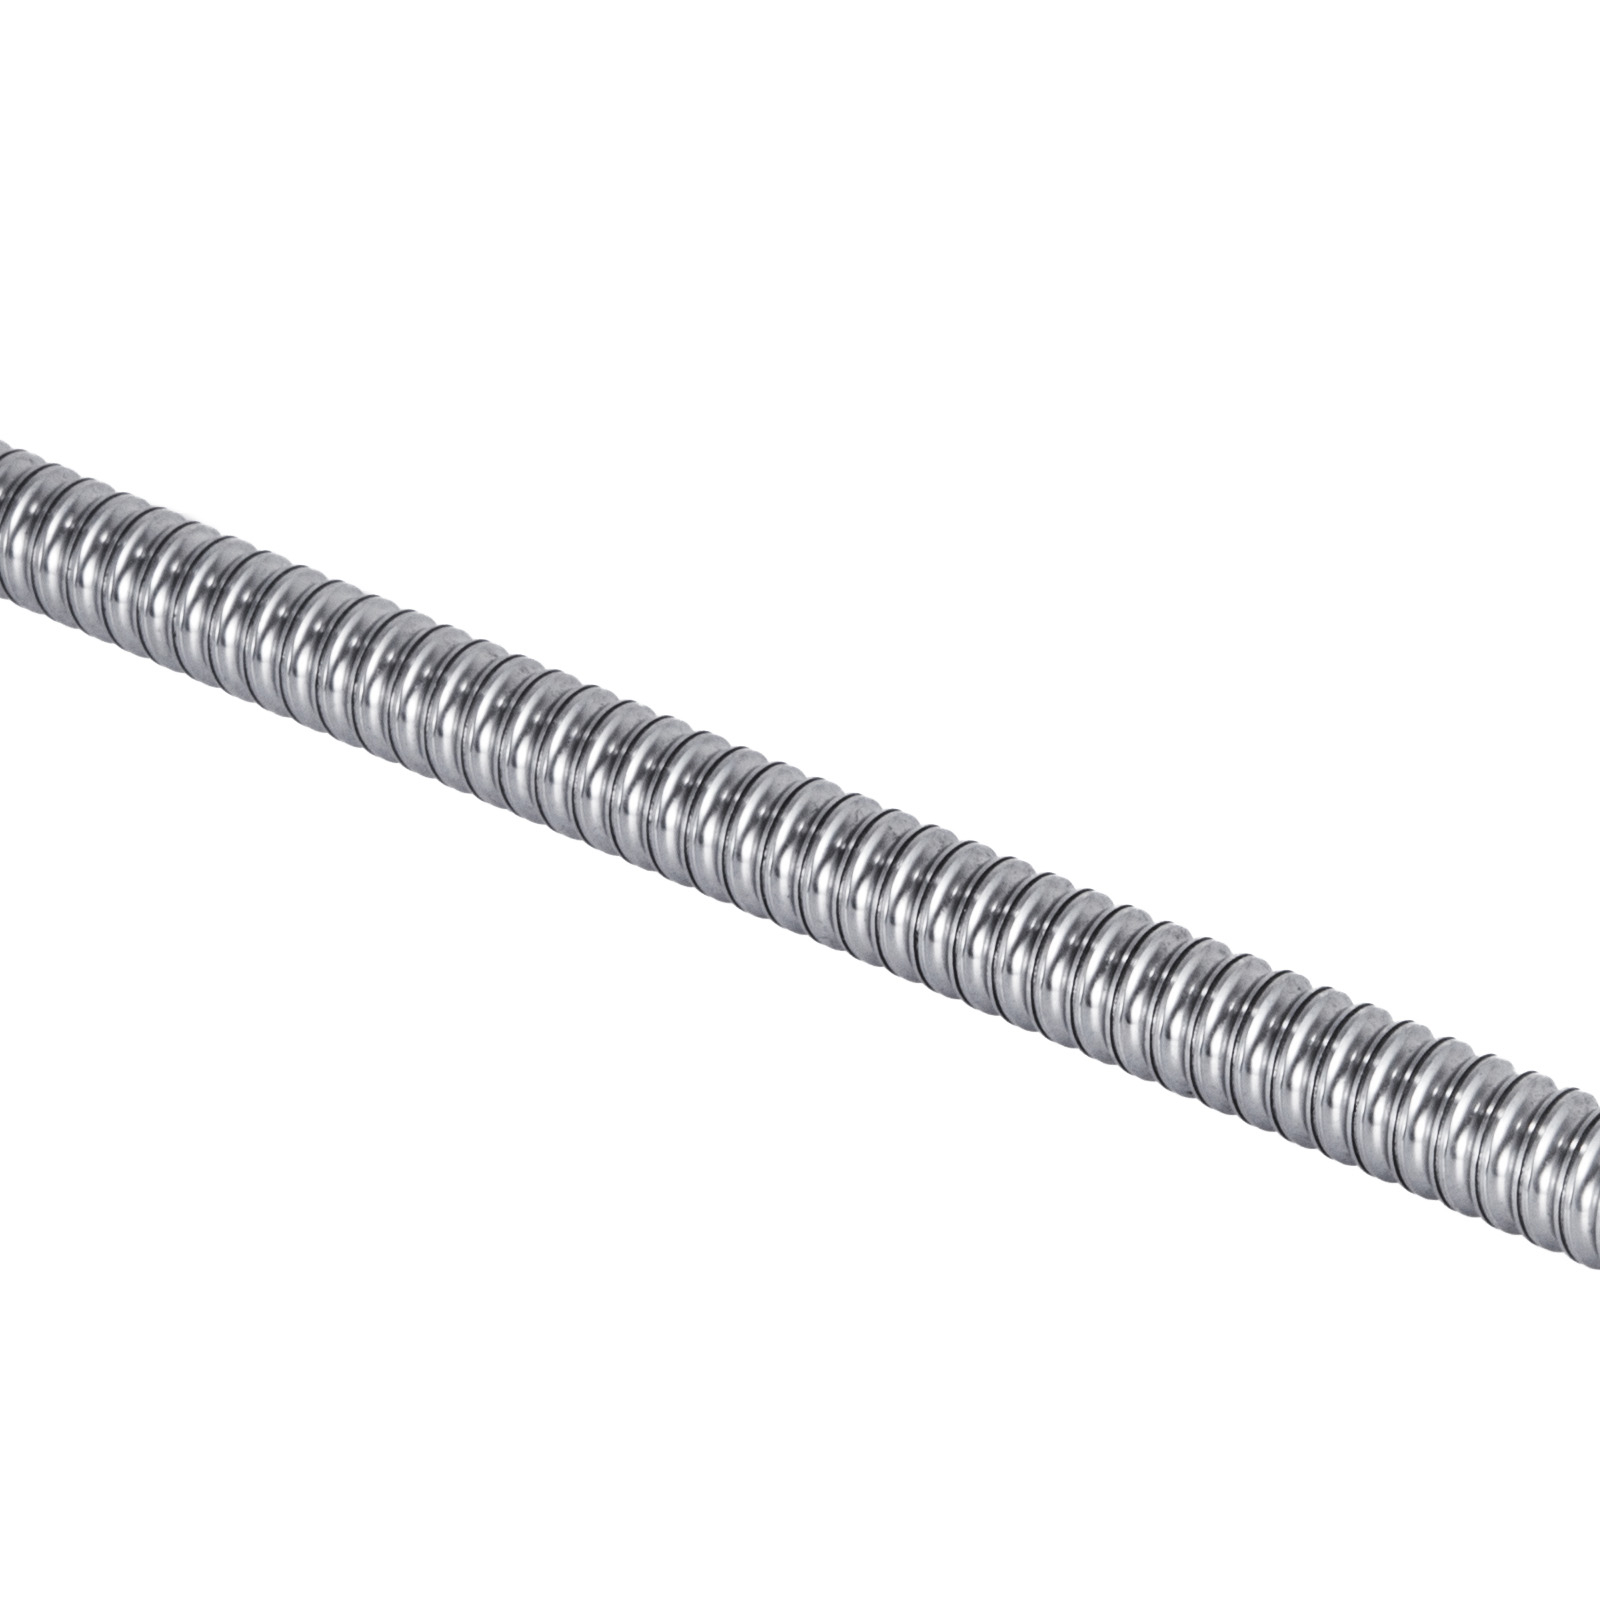 SFU1605-350-1500mm-Rolled-Ball-Screw-With-Ballnut-For-BK-BF12-End-Machined-CNC thumbnail 42